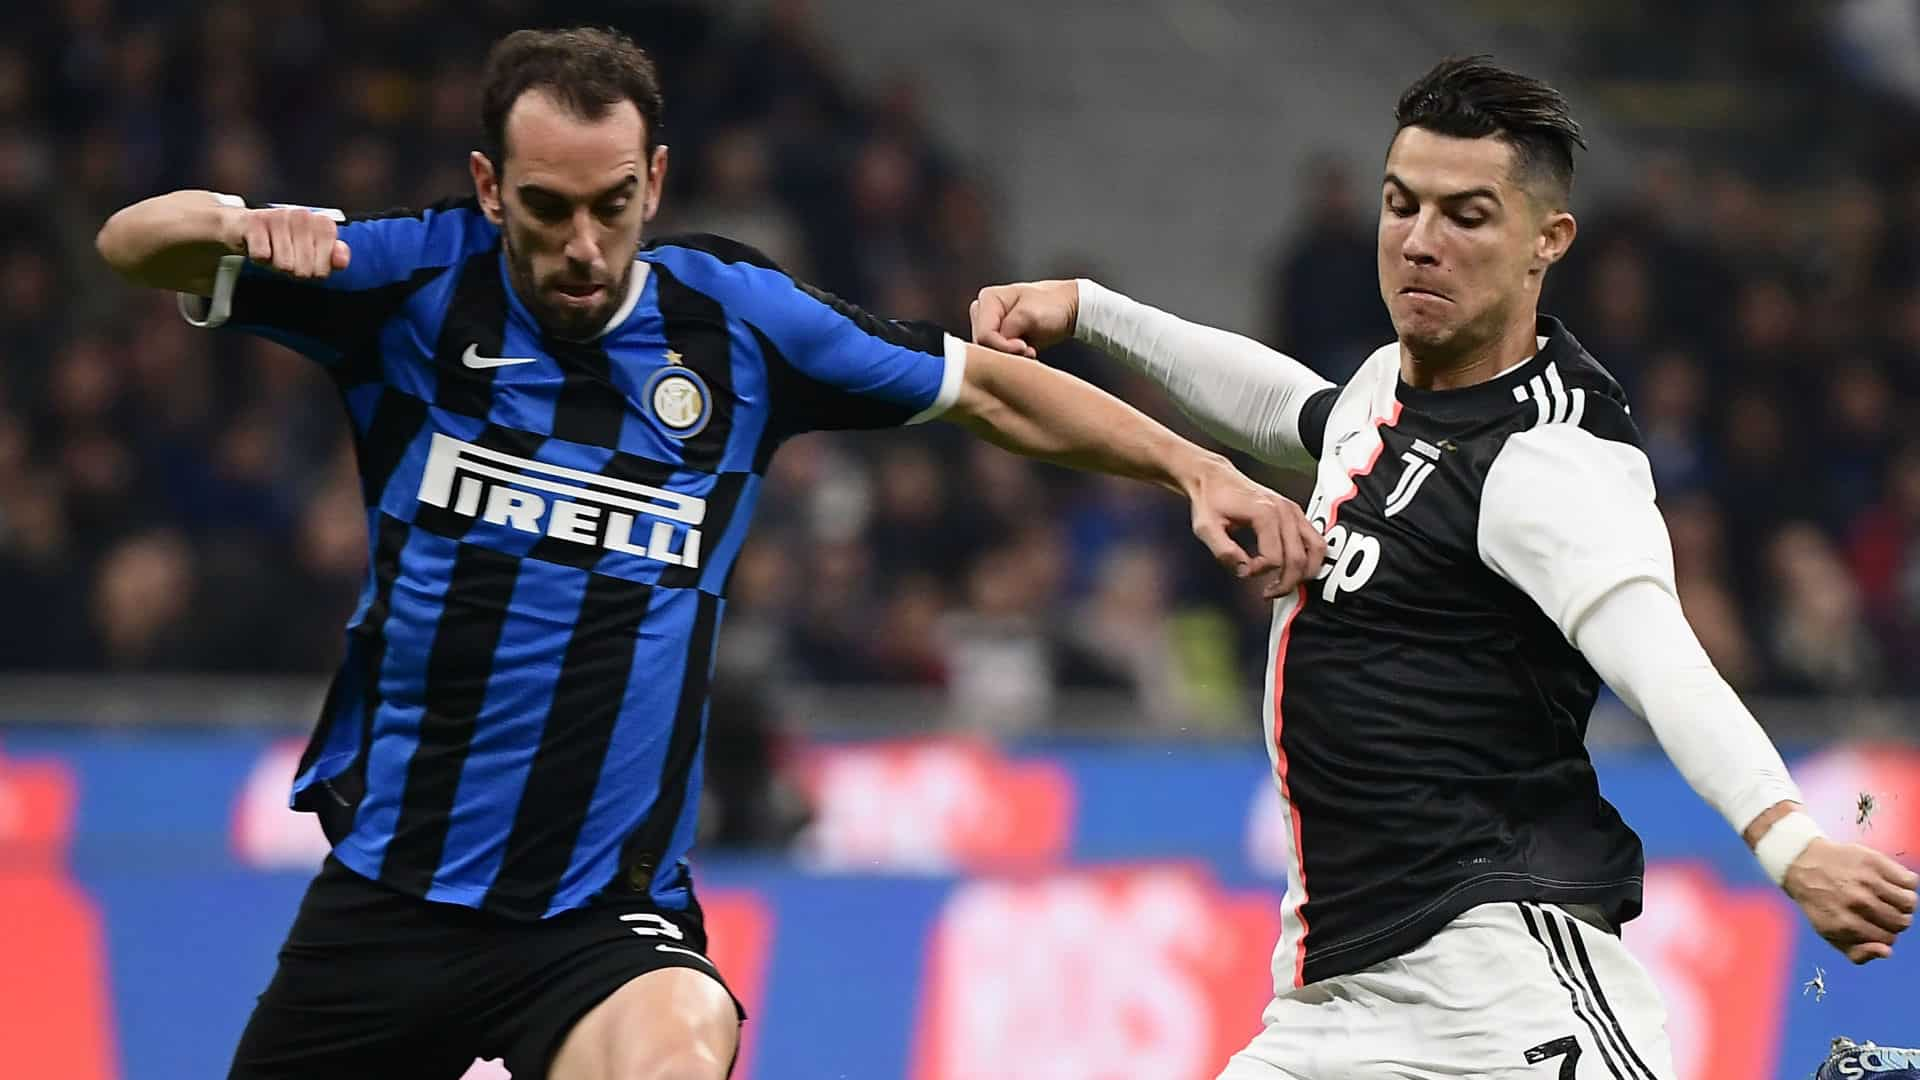 Diego Godin difensore dell'Inter